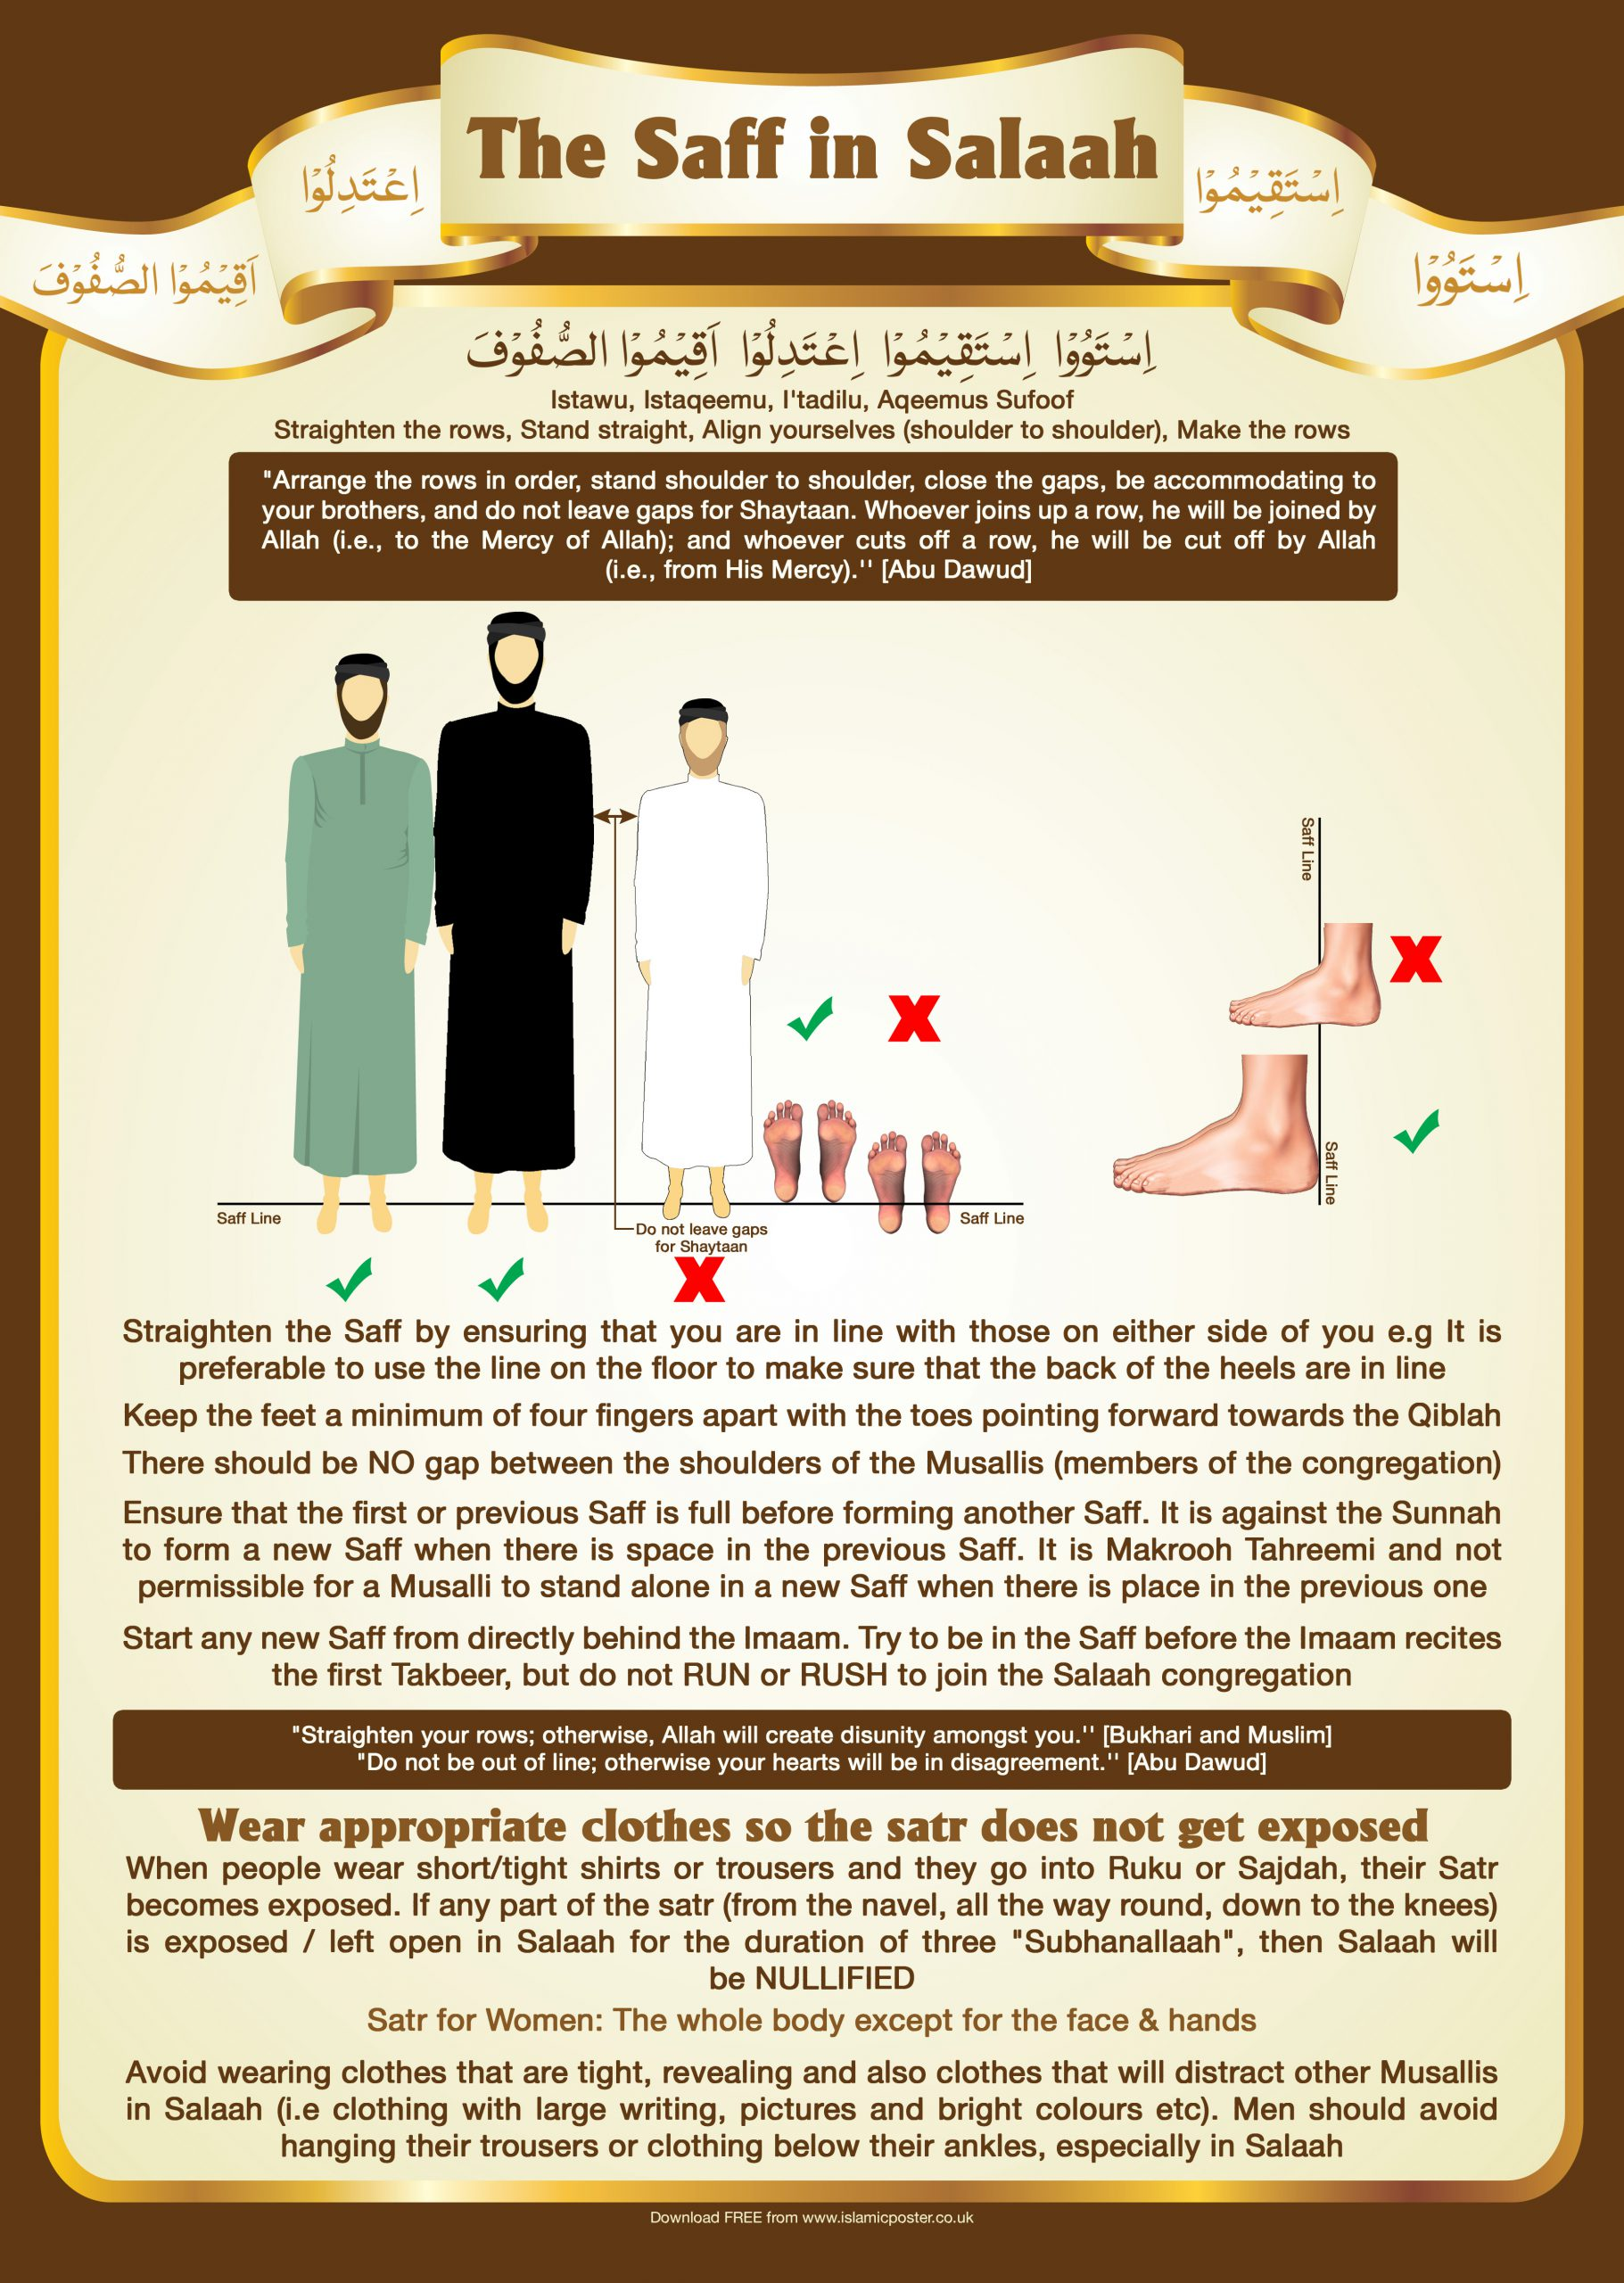 New-5-The-Saff-in-Salaah-Do-not-leave-Gaps-and-straighten-the-rows-and-do-not-expose-your-Satr-A1.jpg